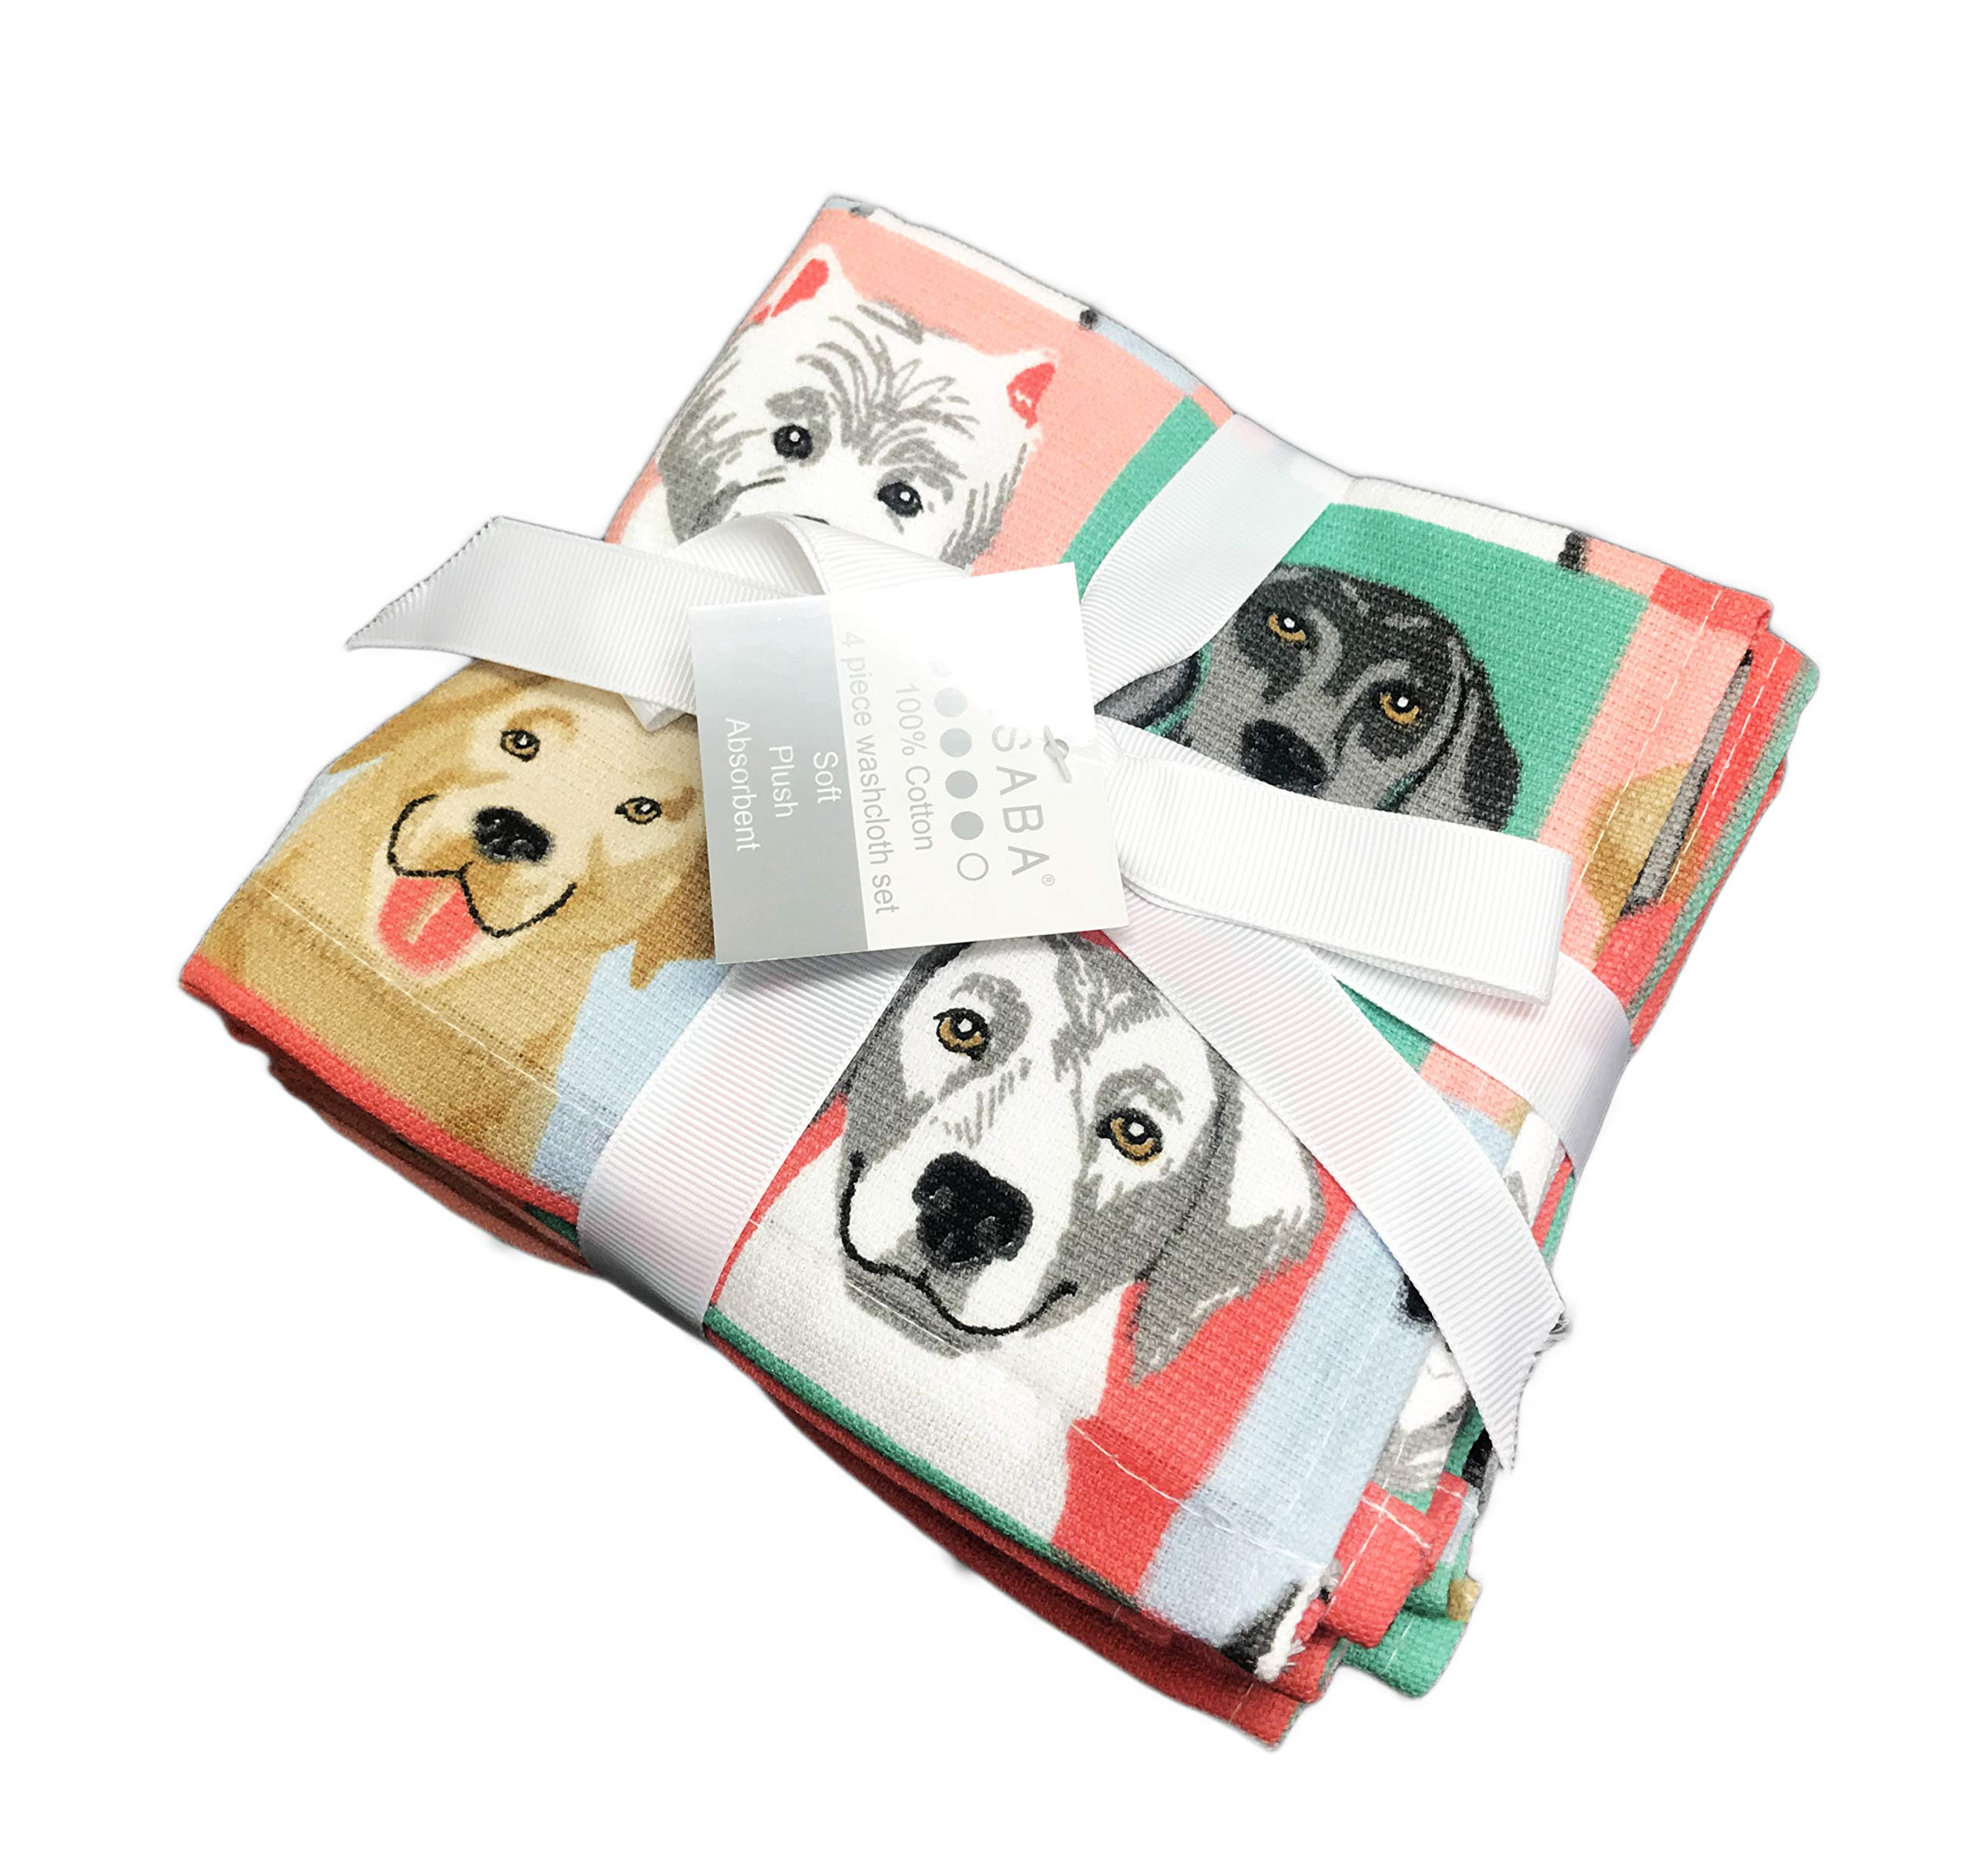 Multi Dog Breeds in Window Pane Squares Colorful Novelty Bathroom Guest Towels (4, Wash Cloth)